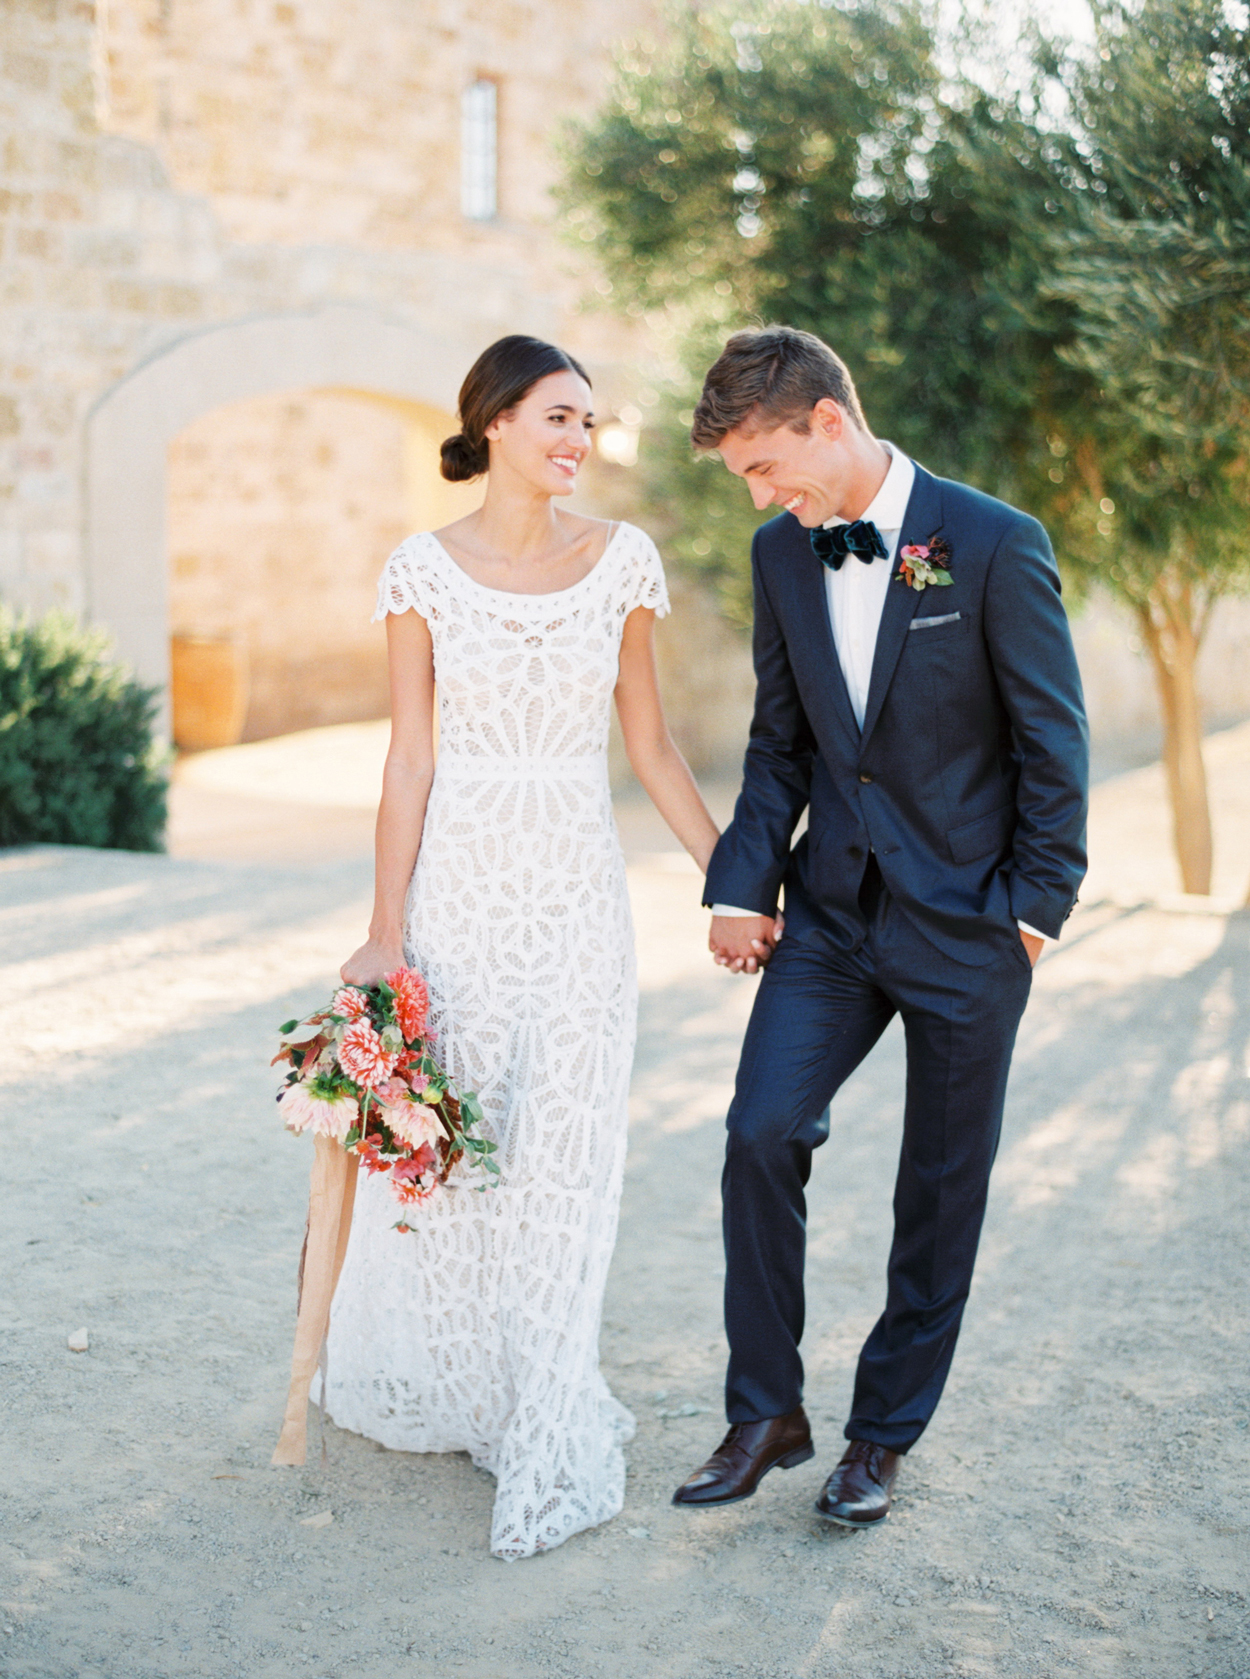 bride wearing lace cap sleeve wedding dress